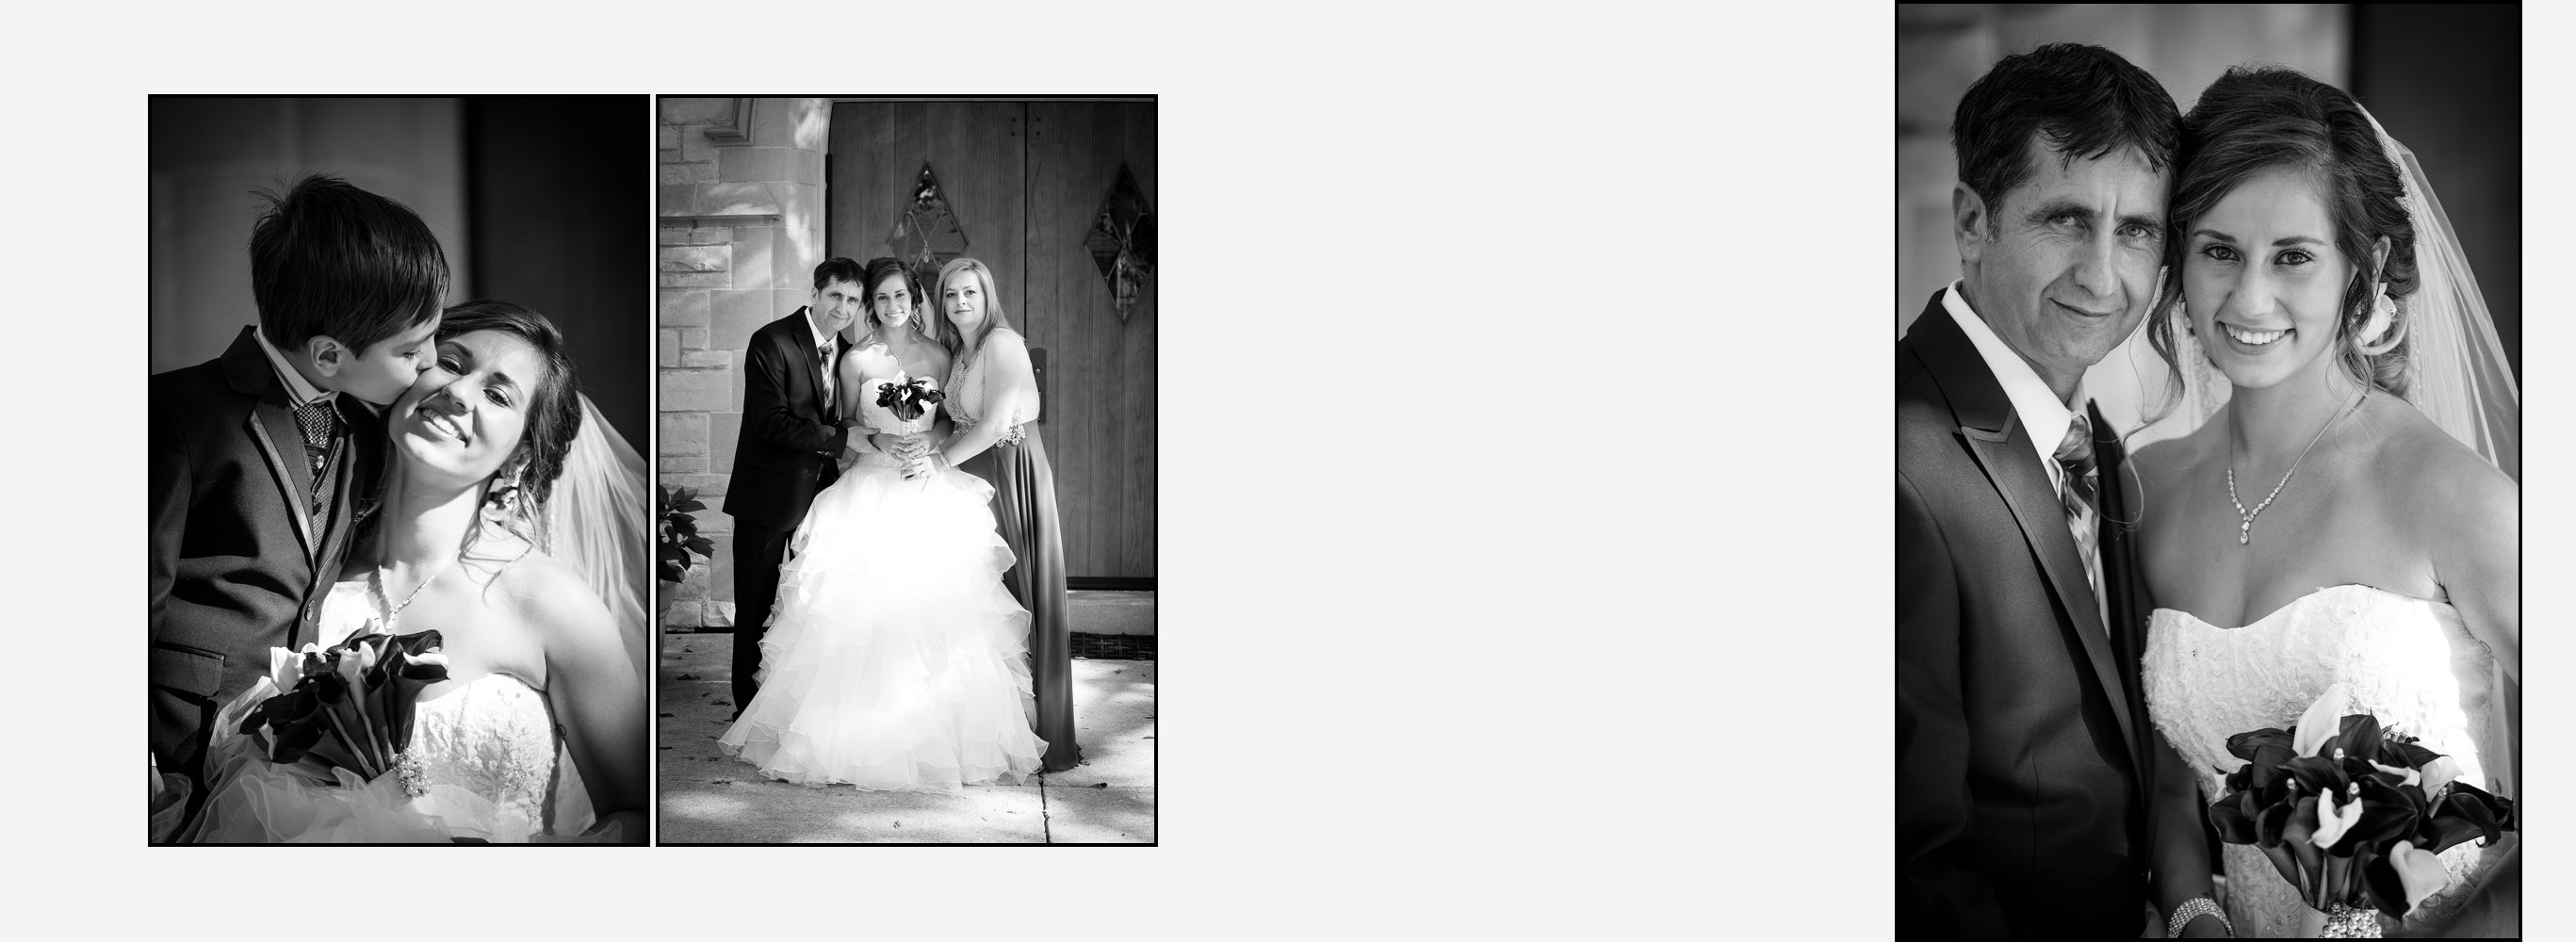 Custom designed wedding album spreads with all black and white photographs